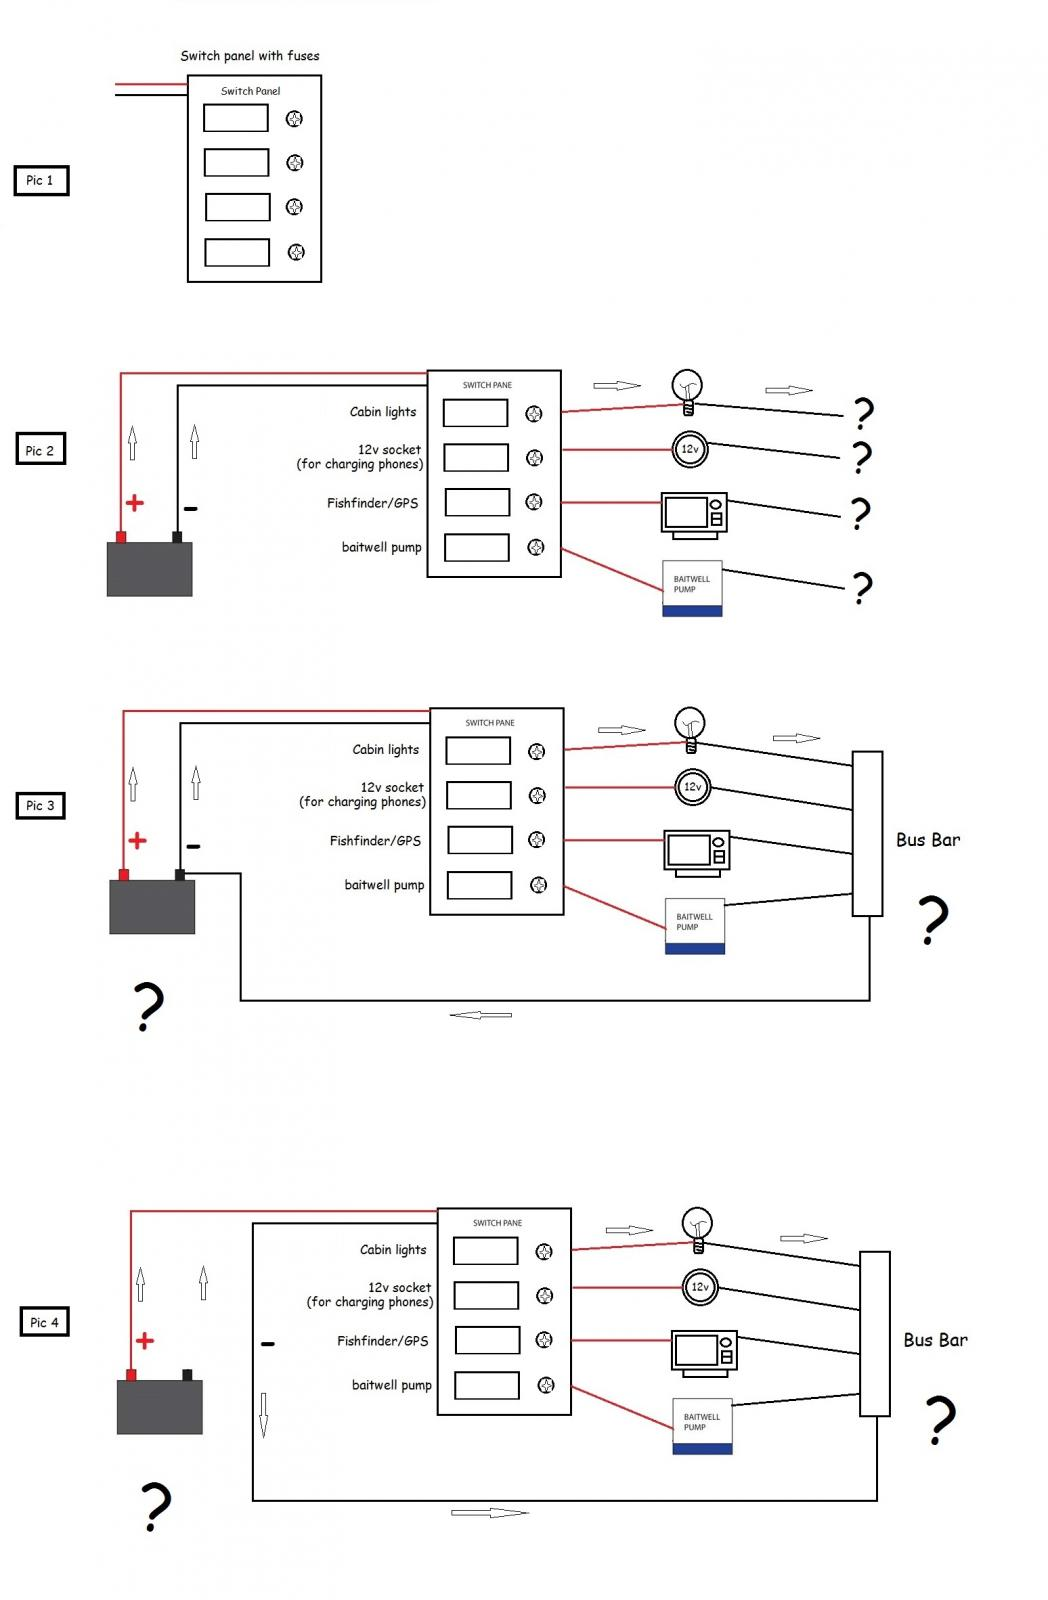 Boat Switch Panel Wiring Diagram from fishraider-ips-assets.s3-ap-southeast-2.amazonaws.com